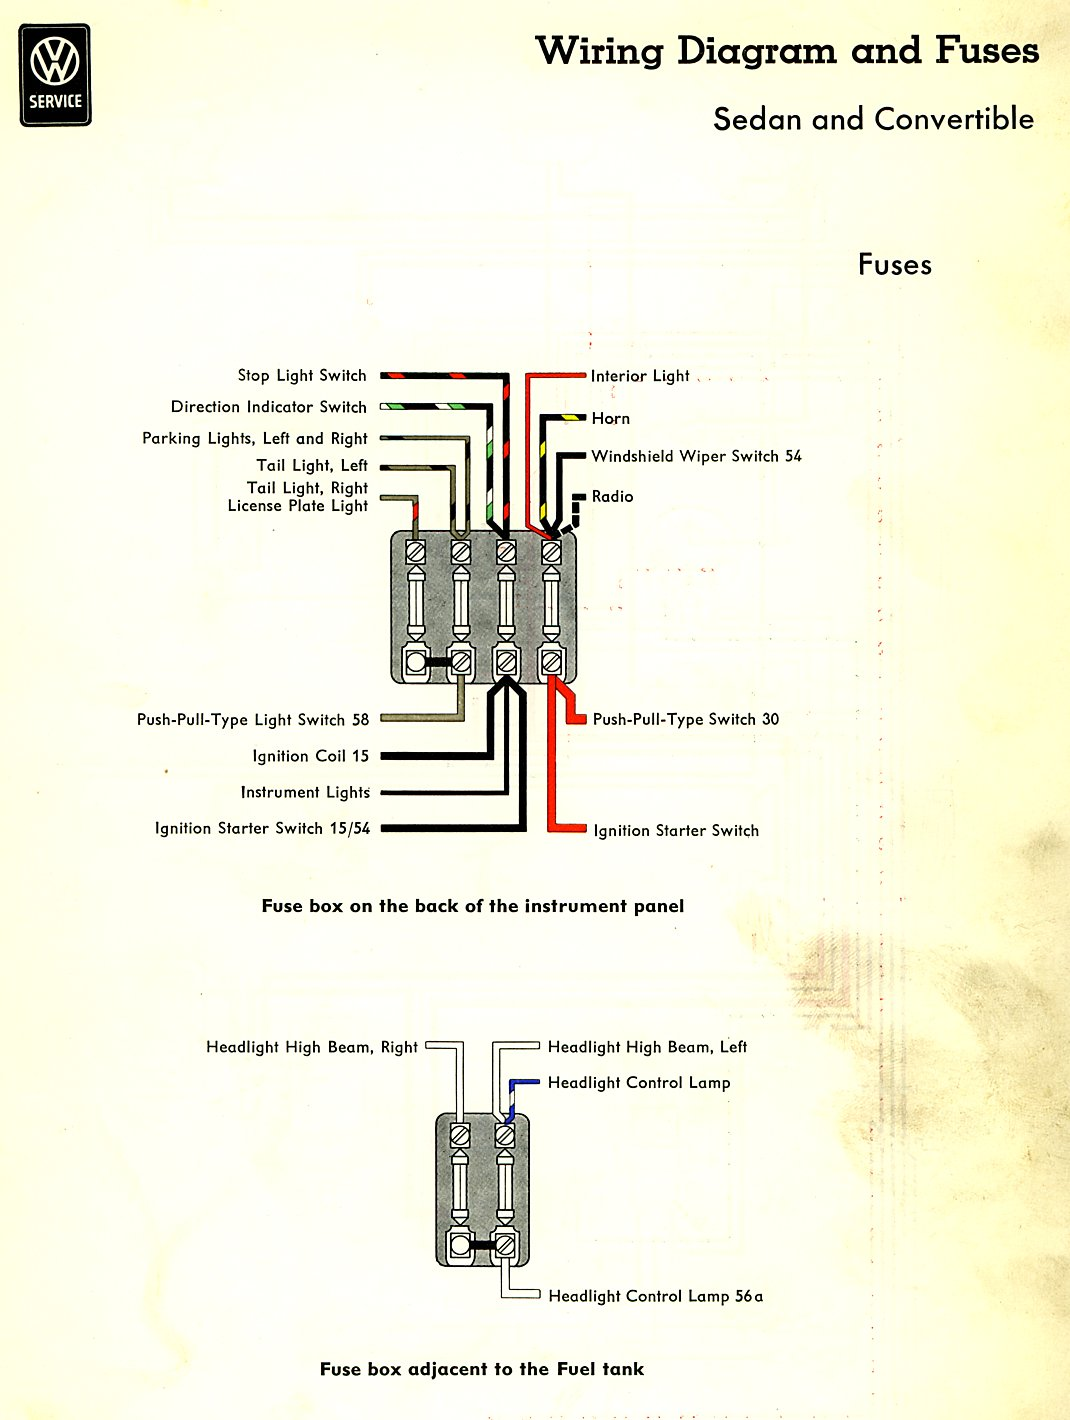 Type 1 Wiring Diagrams 67 Corvette Headlight Motor Diagram